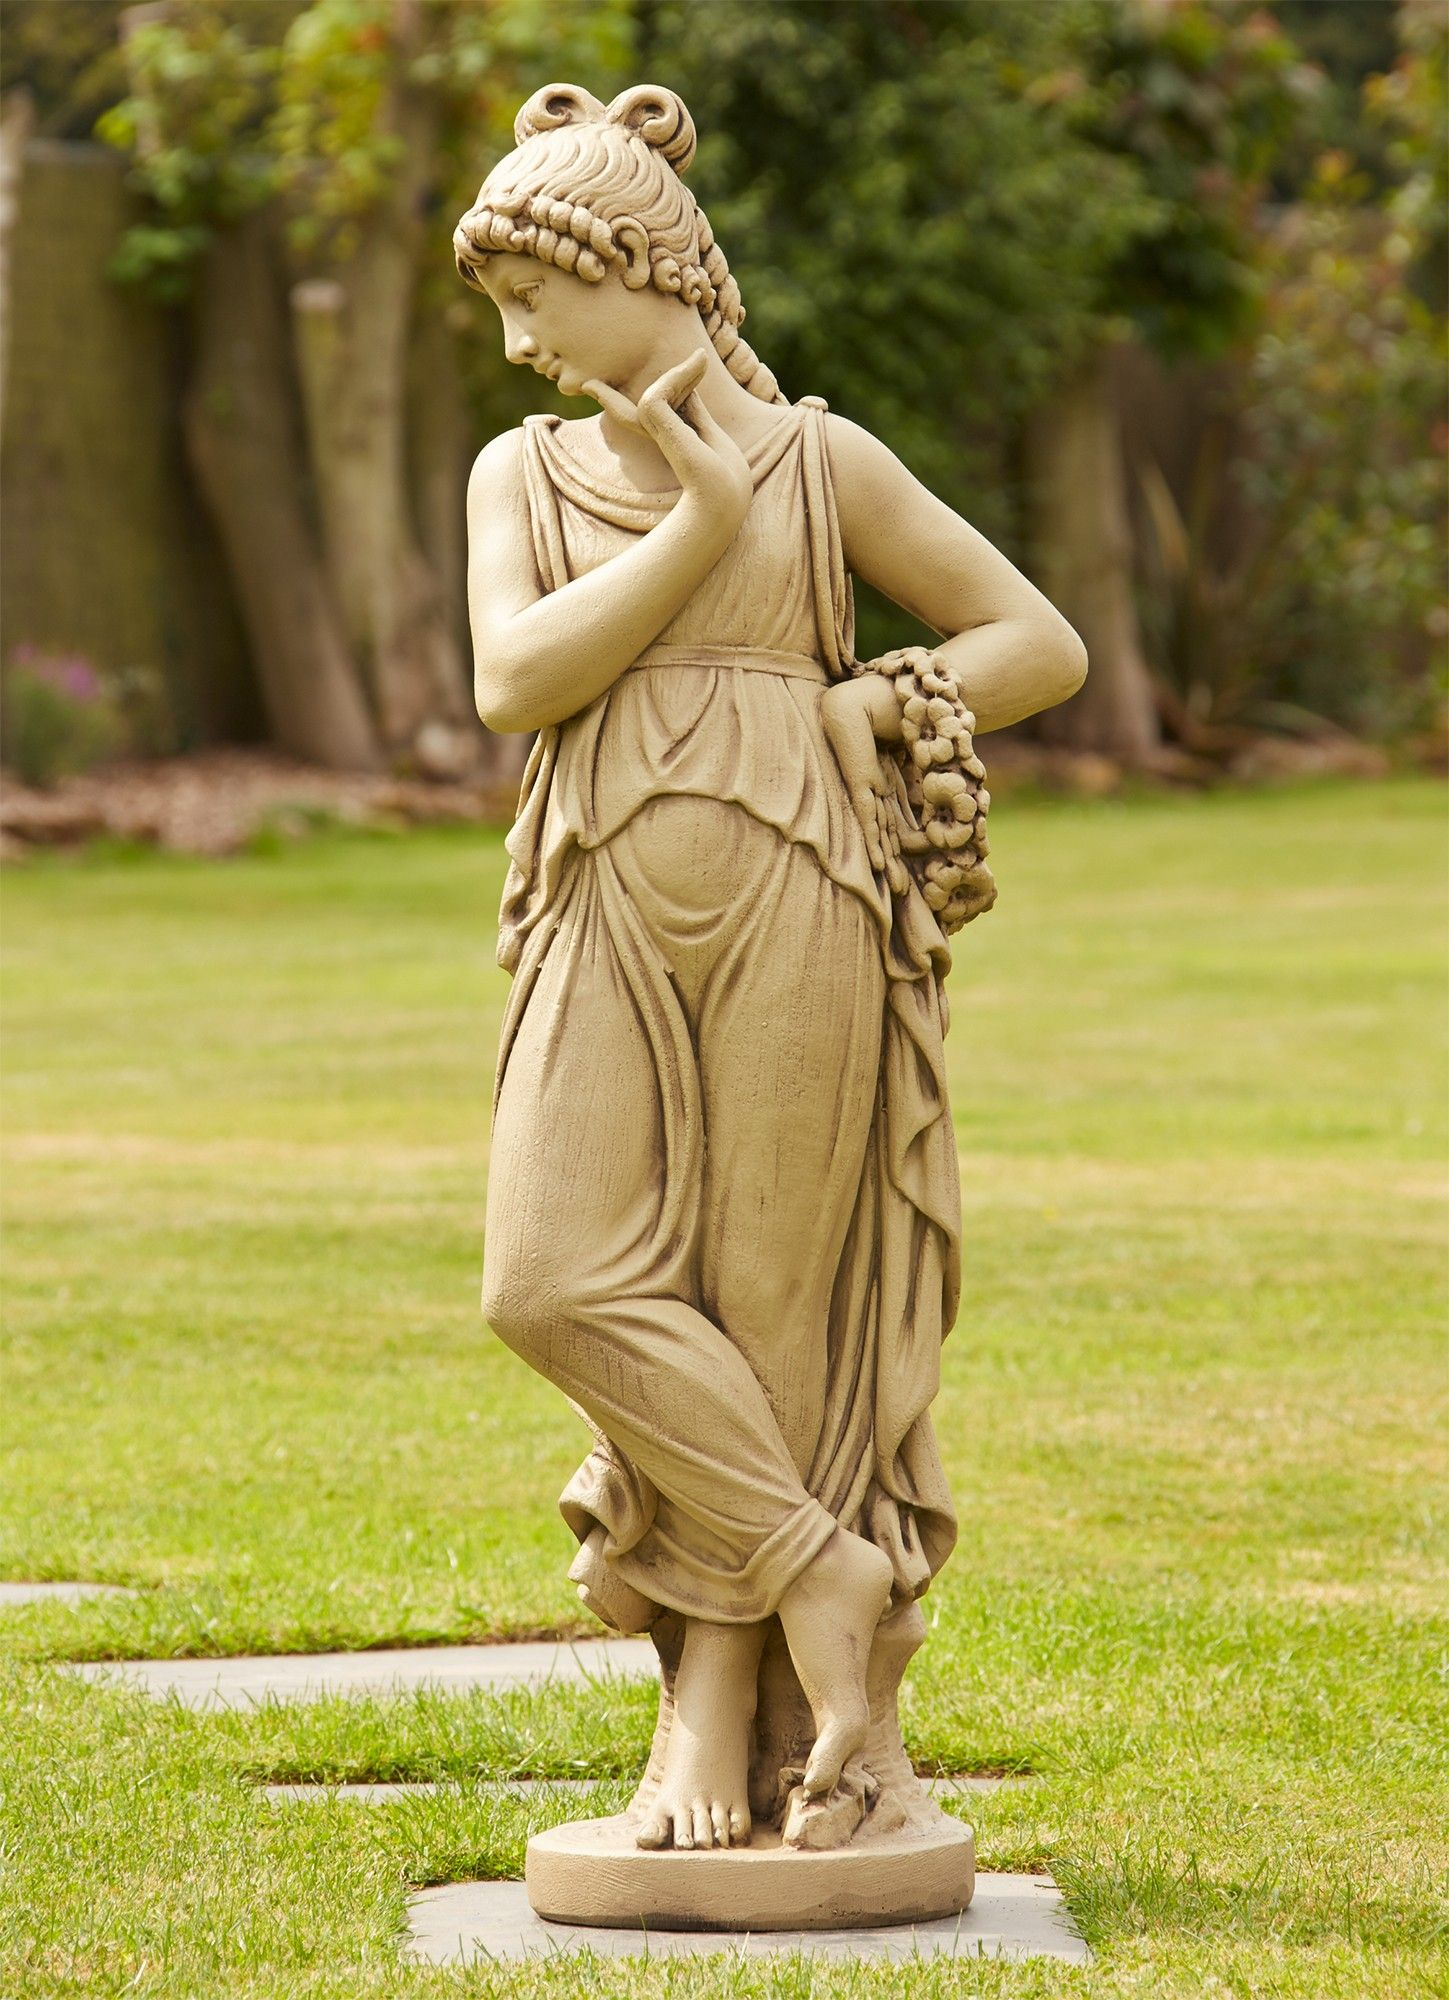 Unique lawn ornaments - View The Nude Elise Stone Sculpture Large Garden Statue Or See Our Full Range Of Exquisite Unique To Statues Sculptures Online